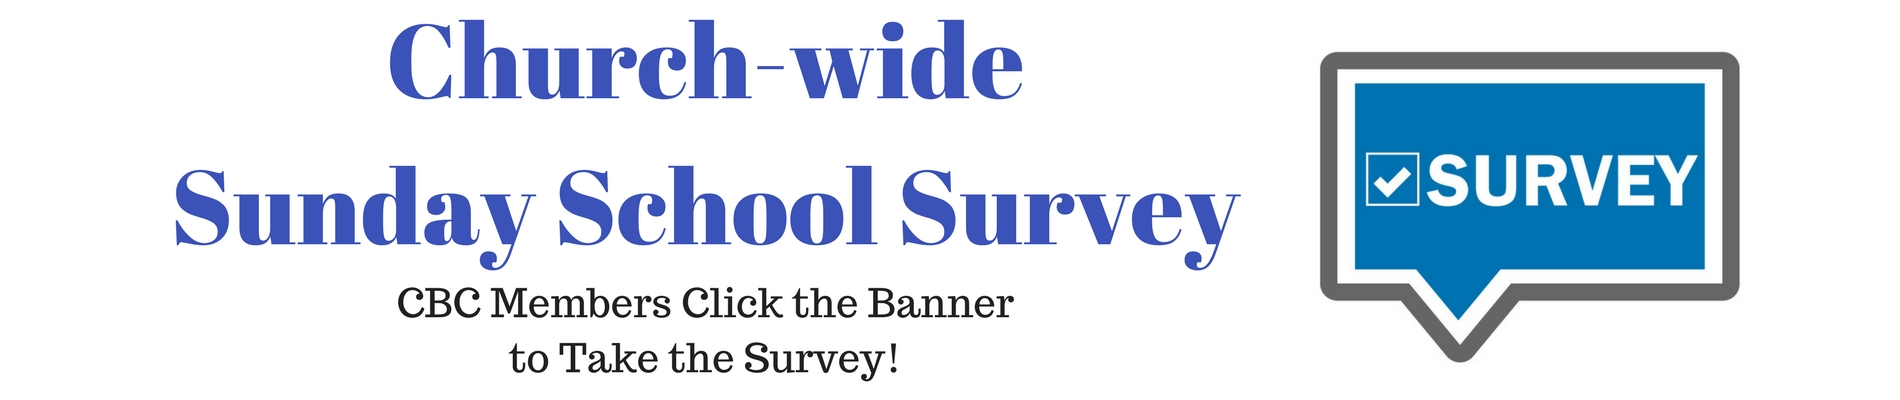 Church-wideSunday school Survey